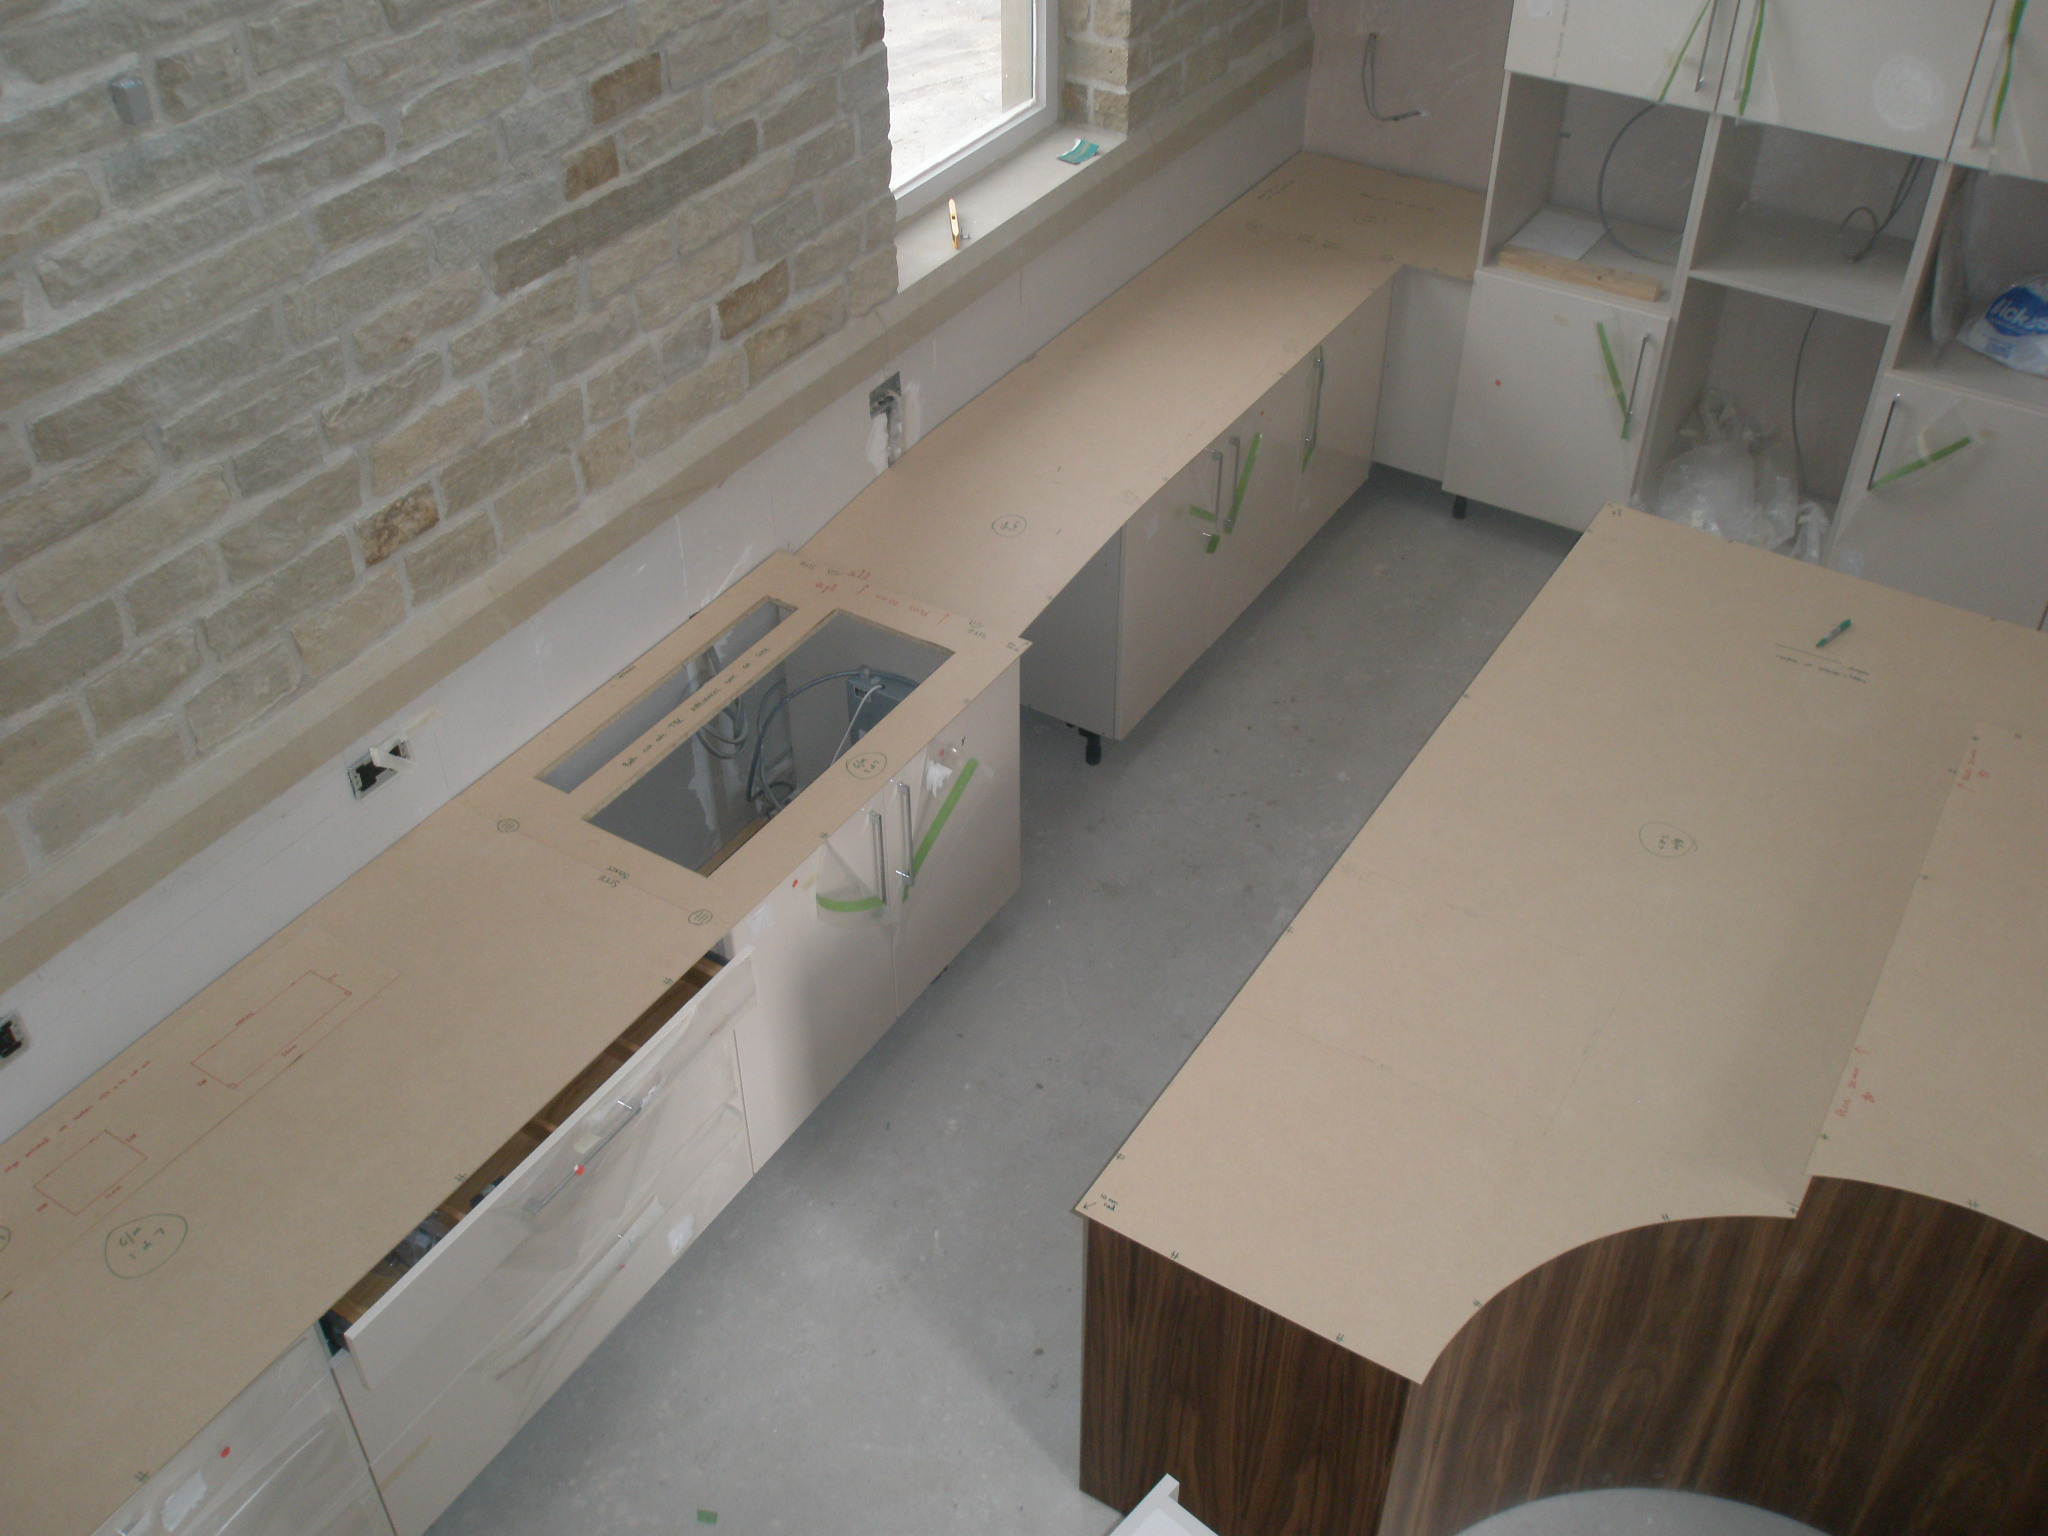 Templates cut for the worktops renovating hagg leys farm for Kitchen worktop cutting template